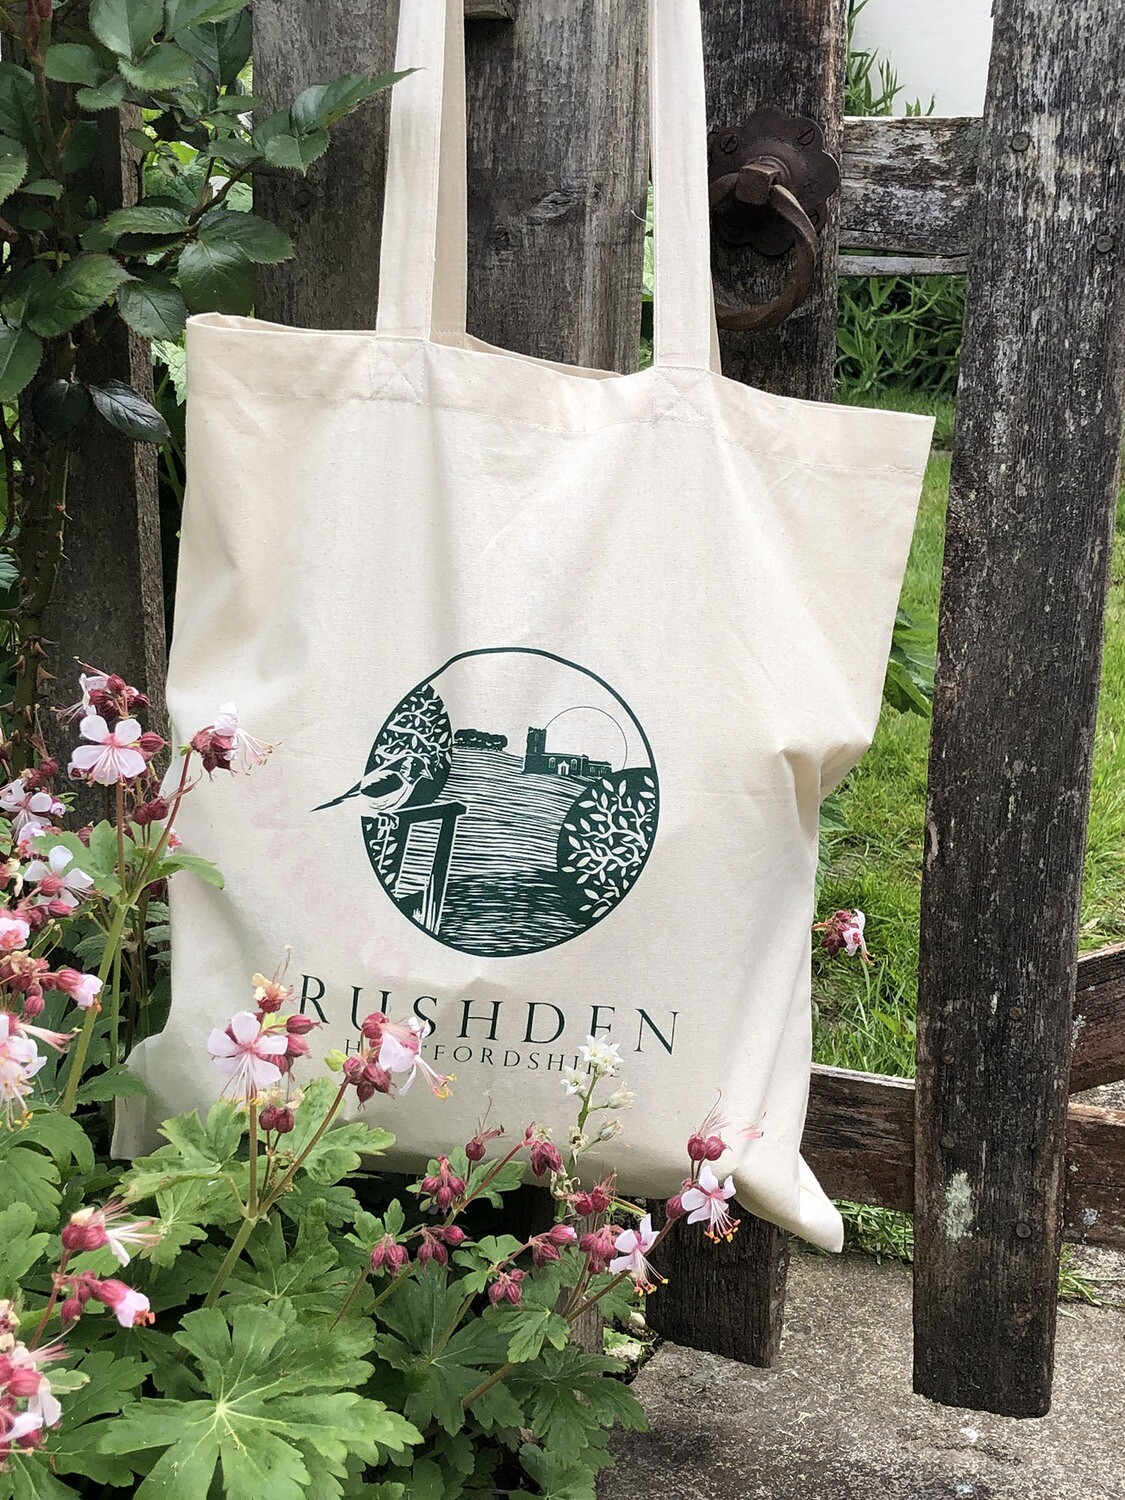 Rushden Hertfordshire Shopping bag